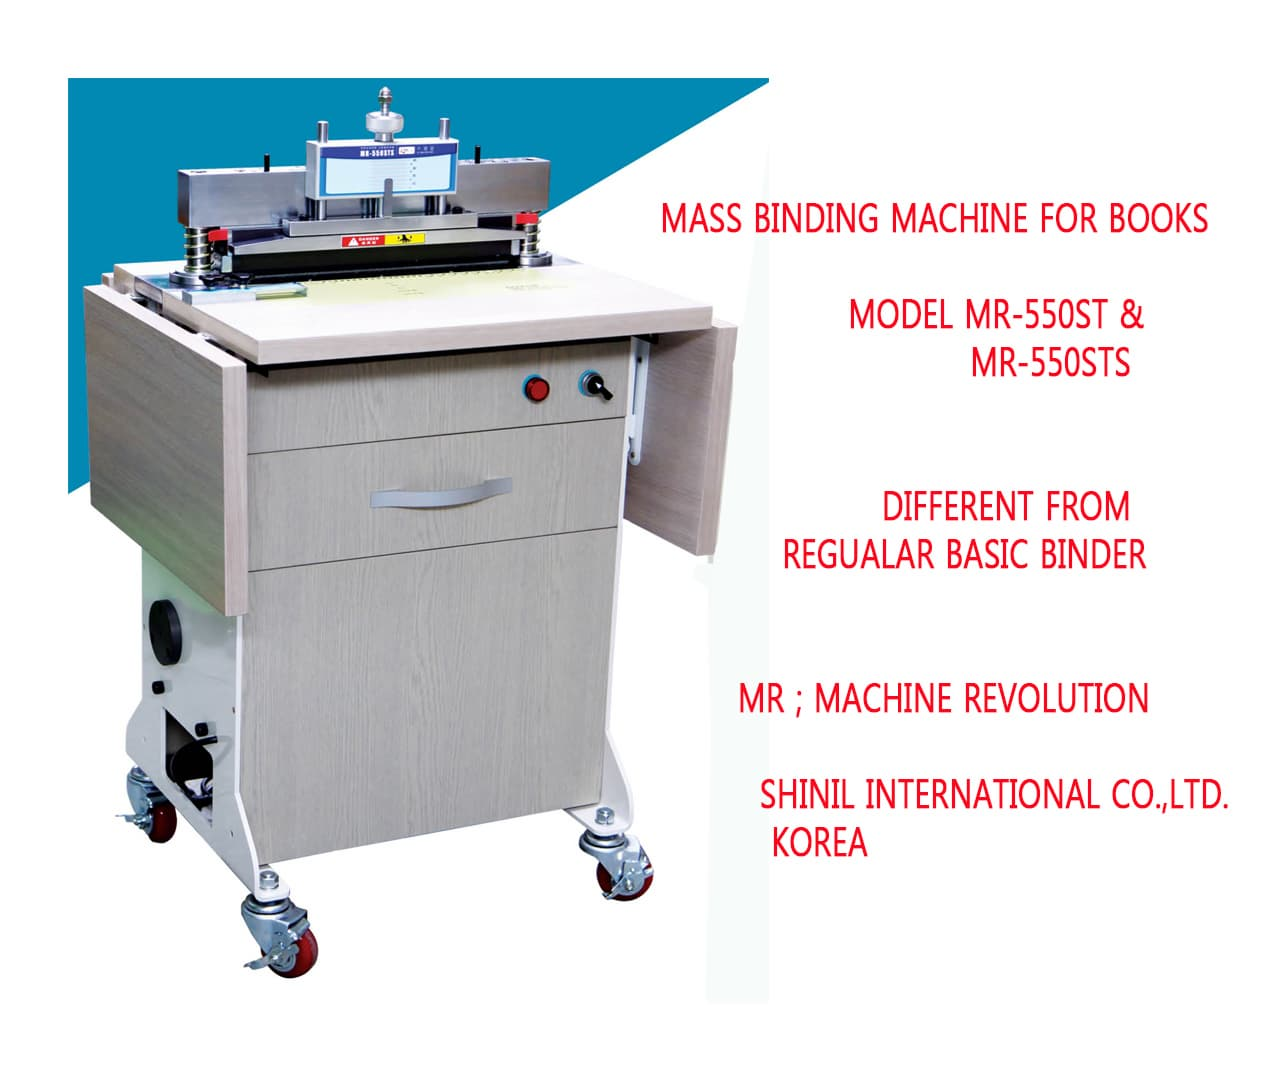 thesis book binding machine Welcome to thesisbinder, an online thesis printing and binding service offered by wakefields digital we offer a simple, fast and efficient online service, you can access the thesis wizard, upload your files, pay online and we take care of the rest for you.